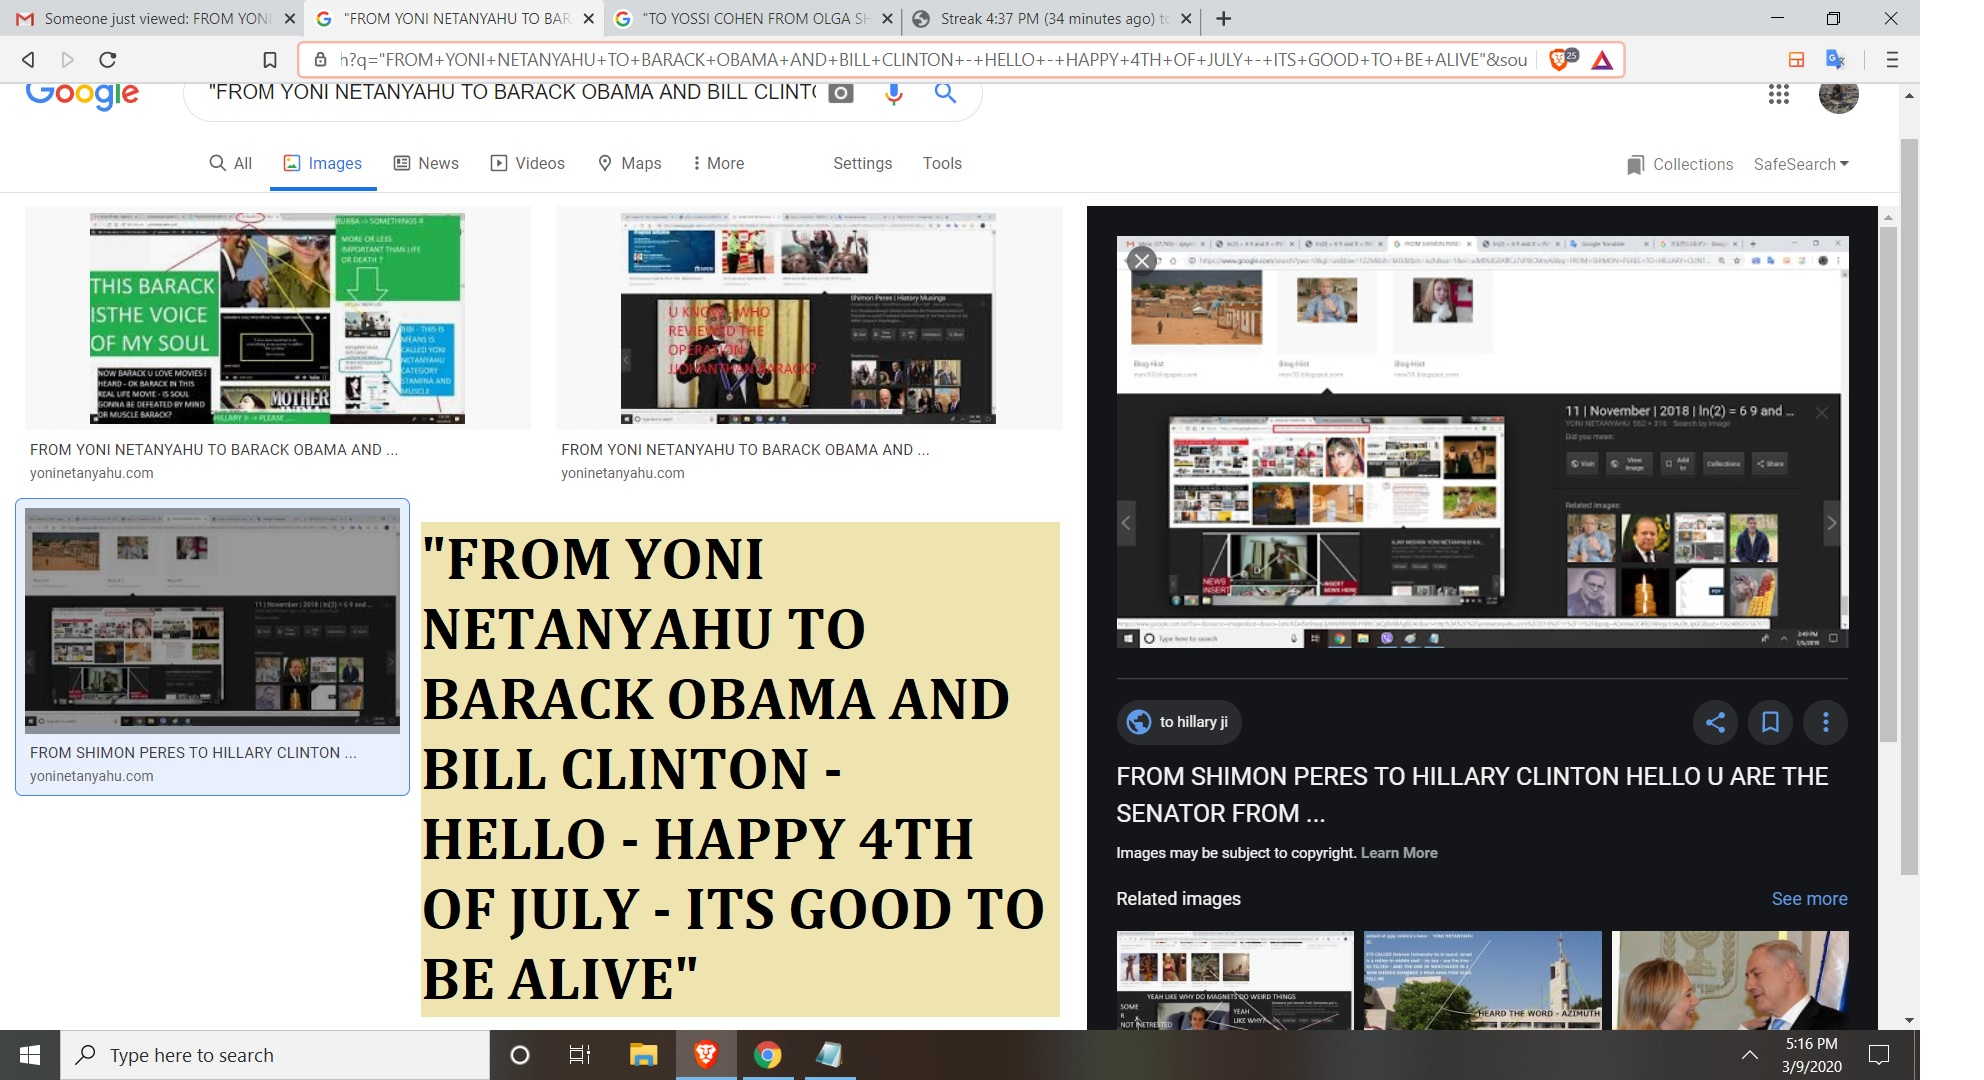 FROM YONI NETANYAHU TO BARACK OBAMA AND BILL CLINTON - HELLO - HAPPY 4TH OF JULY - ITS GOOD TO BE ALIVE